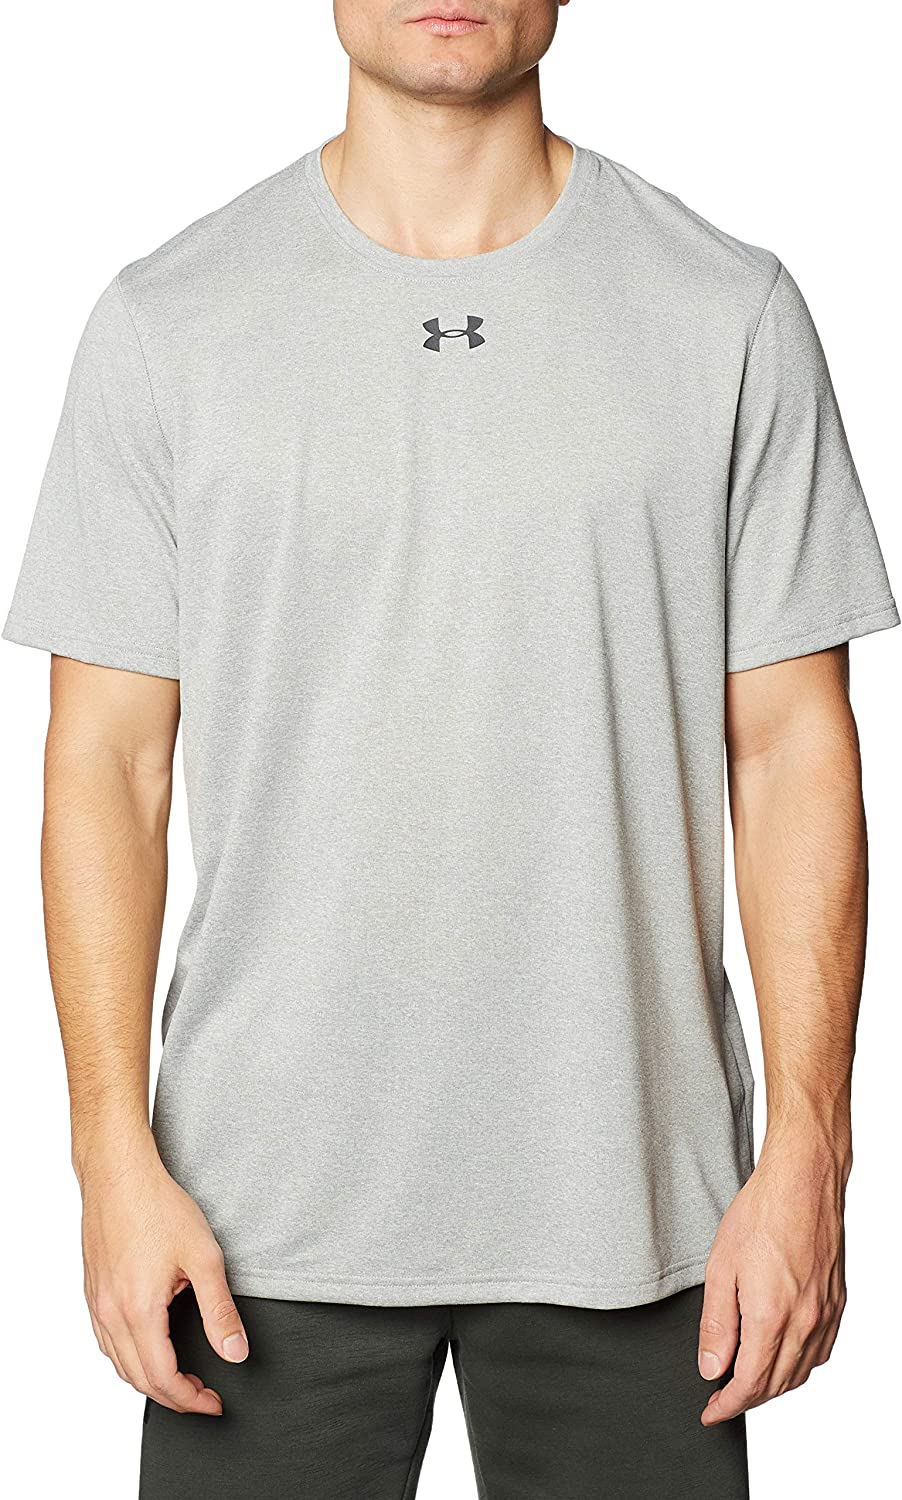 Under Sales of SALE items from new works Armour Men's Locker Many popular brands Short-Sleeve T-Shirt 2.0 Tee